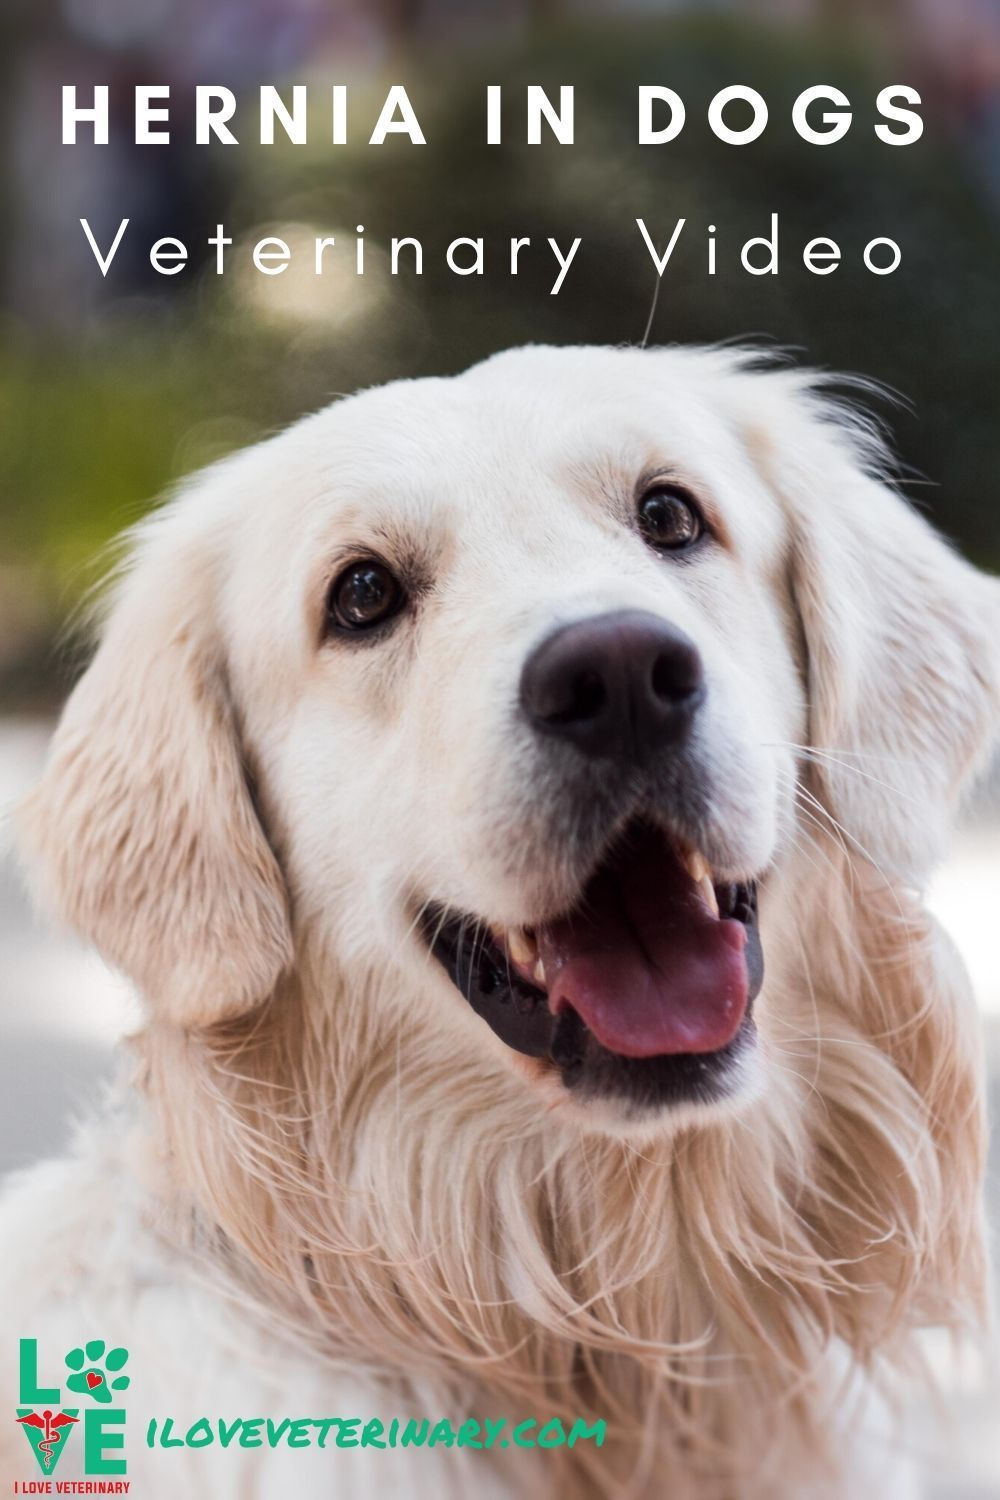 Veterinary Video Hernia In Dogs In 2020 Dogs Golden Retriever Animals